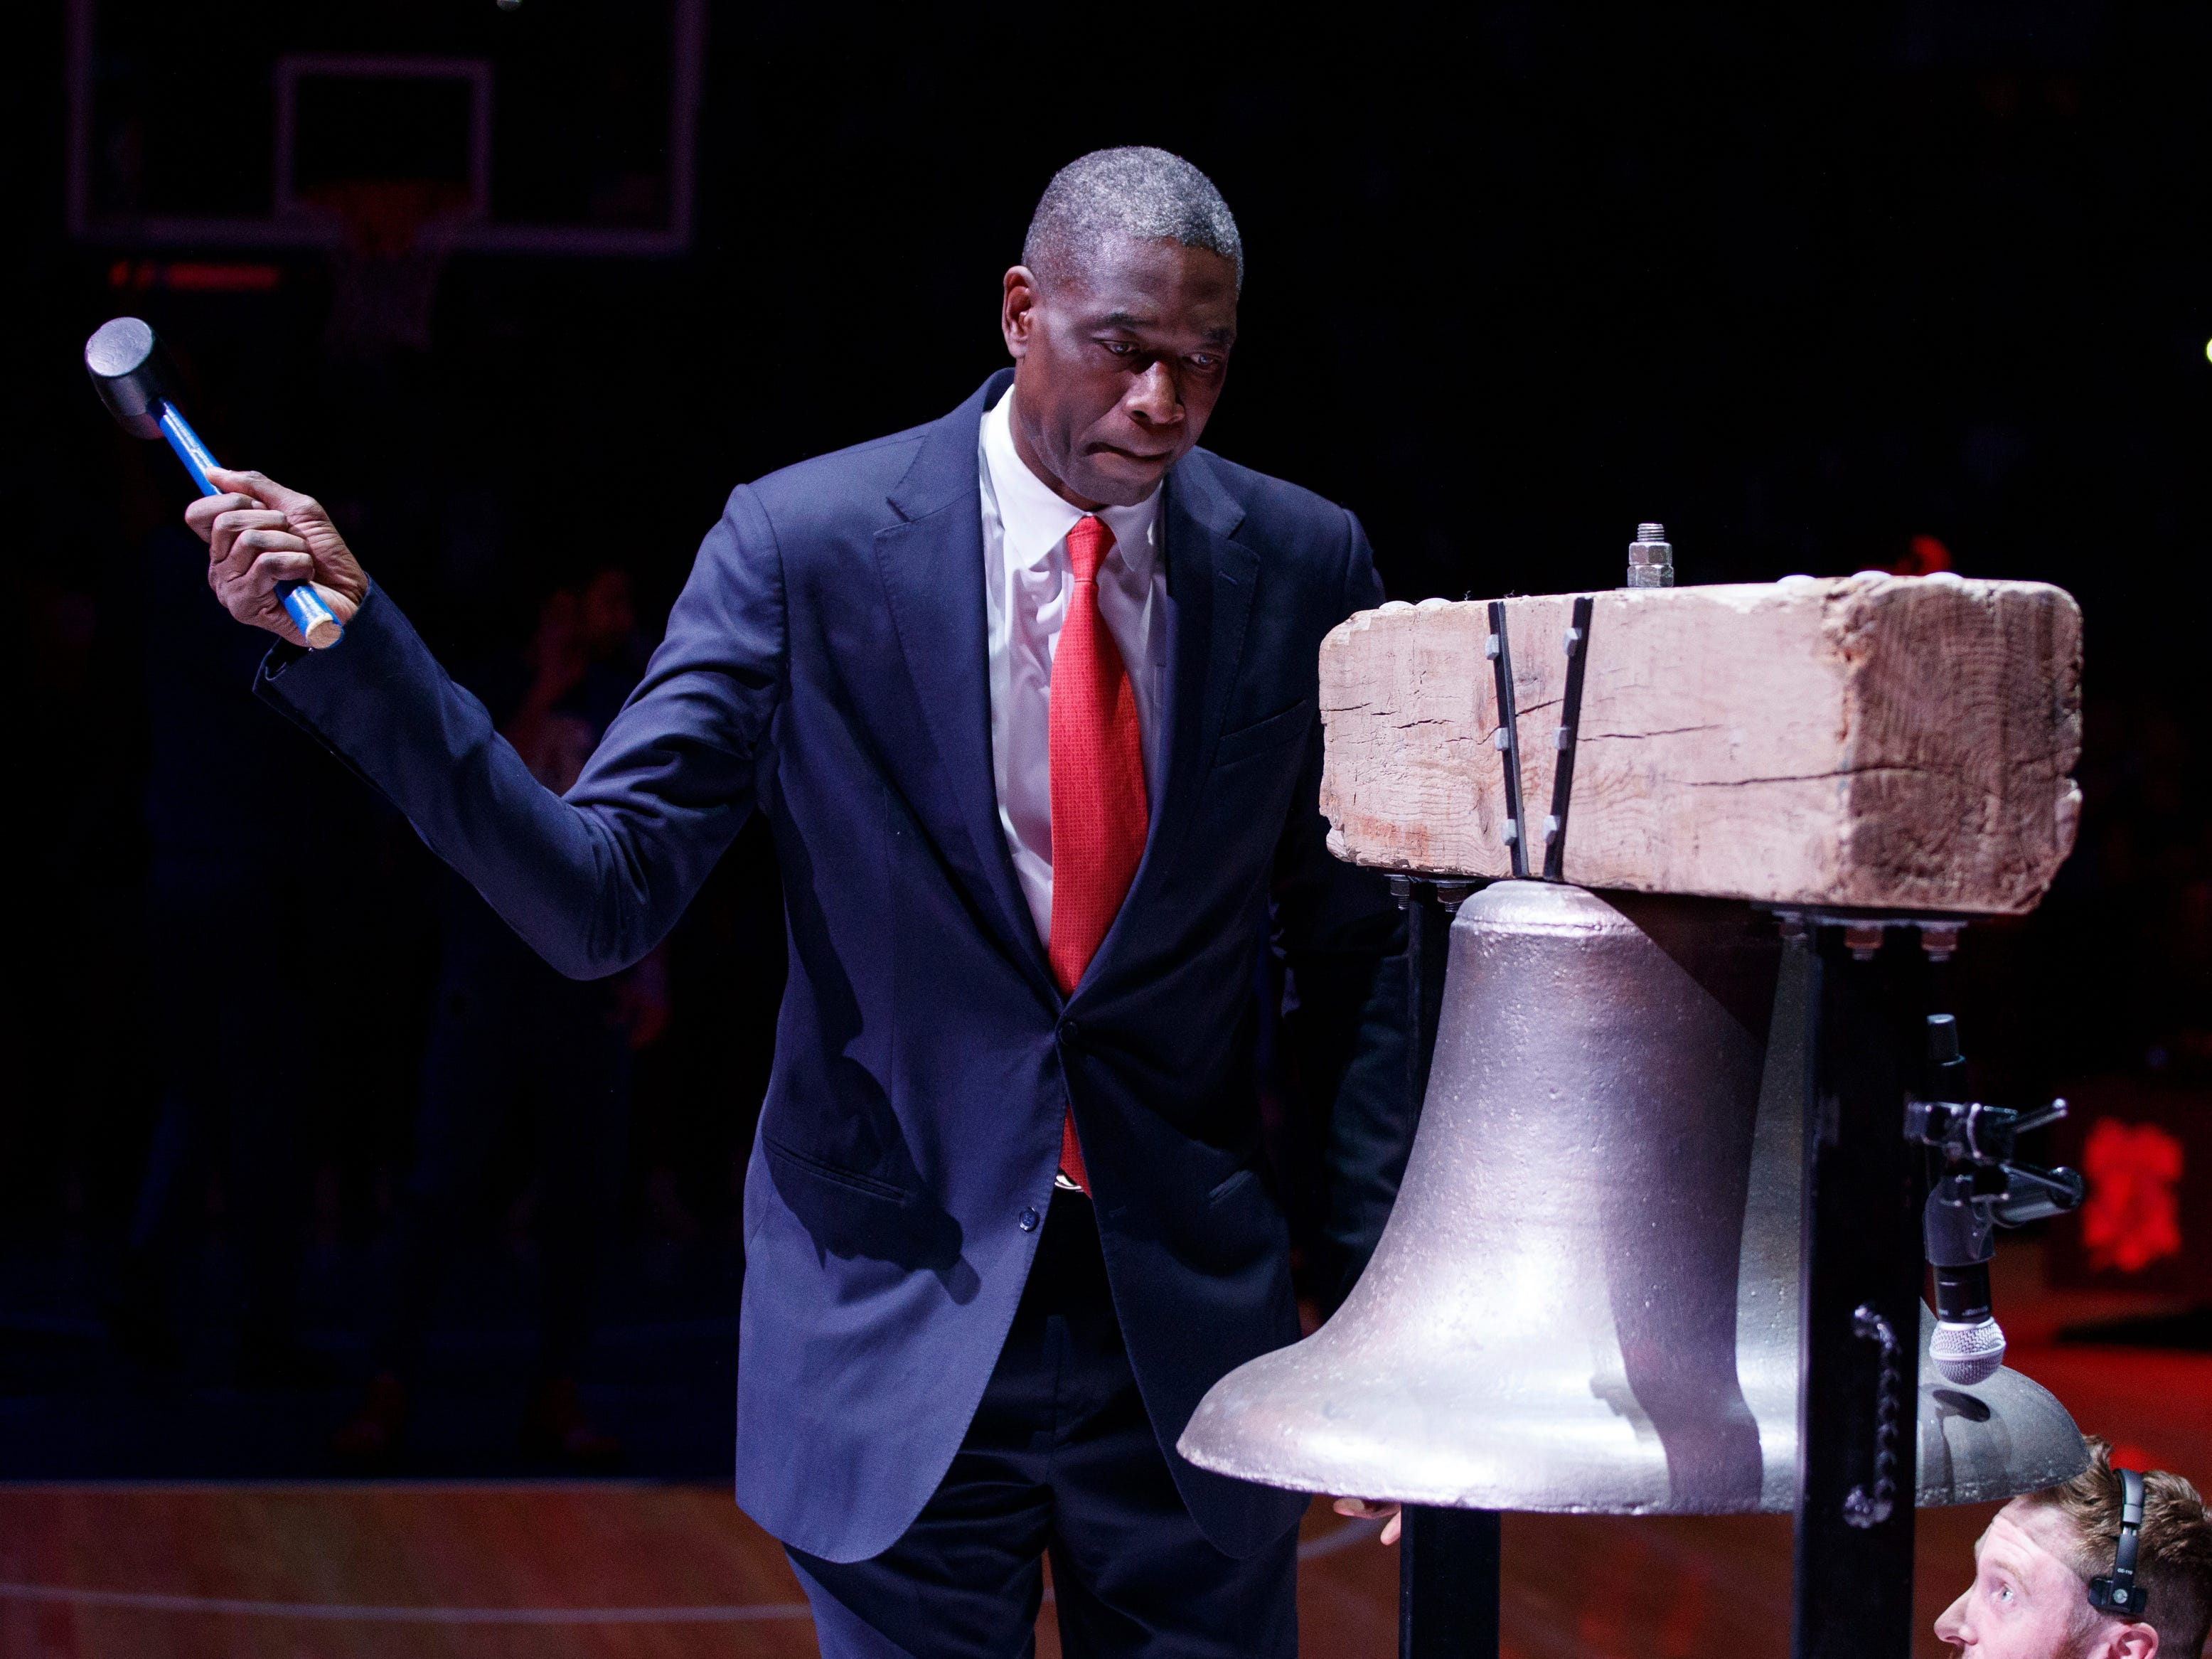 April 15: Hall of Famer Dikembe Mutombo comes out to ring the bell prior to the first half of Game 2 between the 76ers and Nets in Philadelphia.